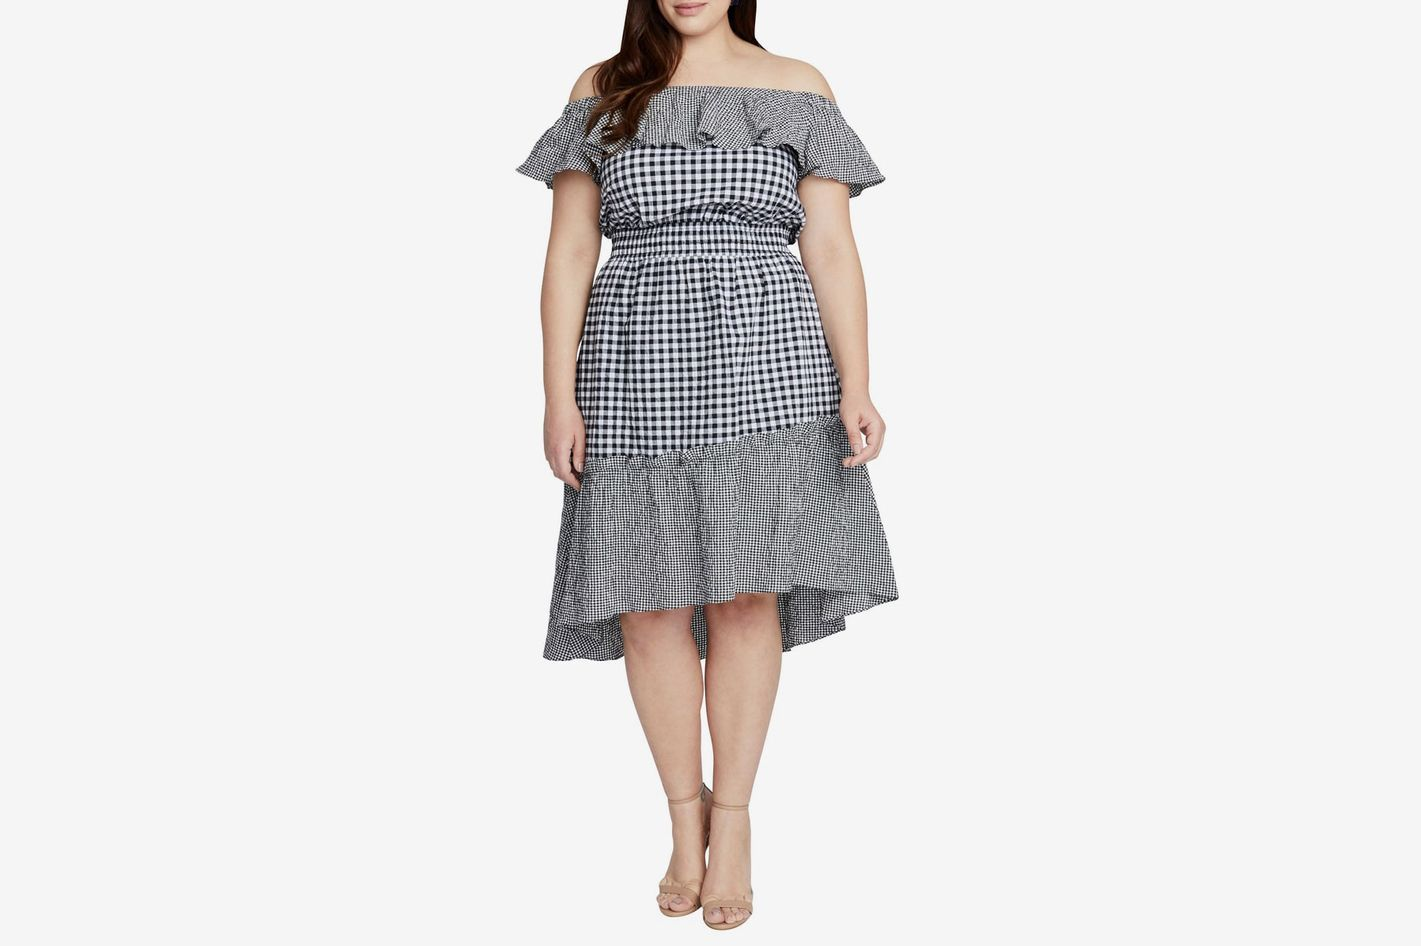 Rachel Rachel Roy Gingham Dress